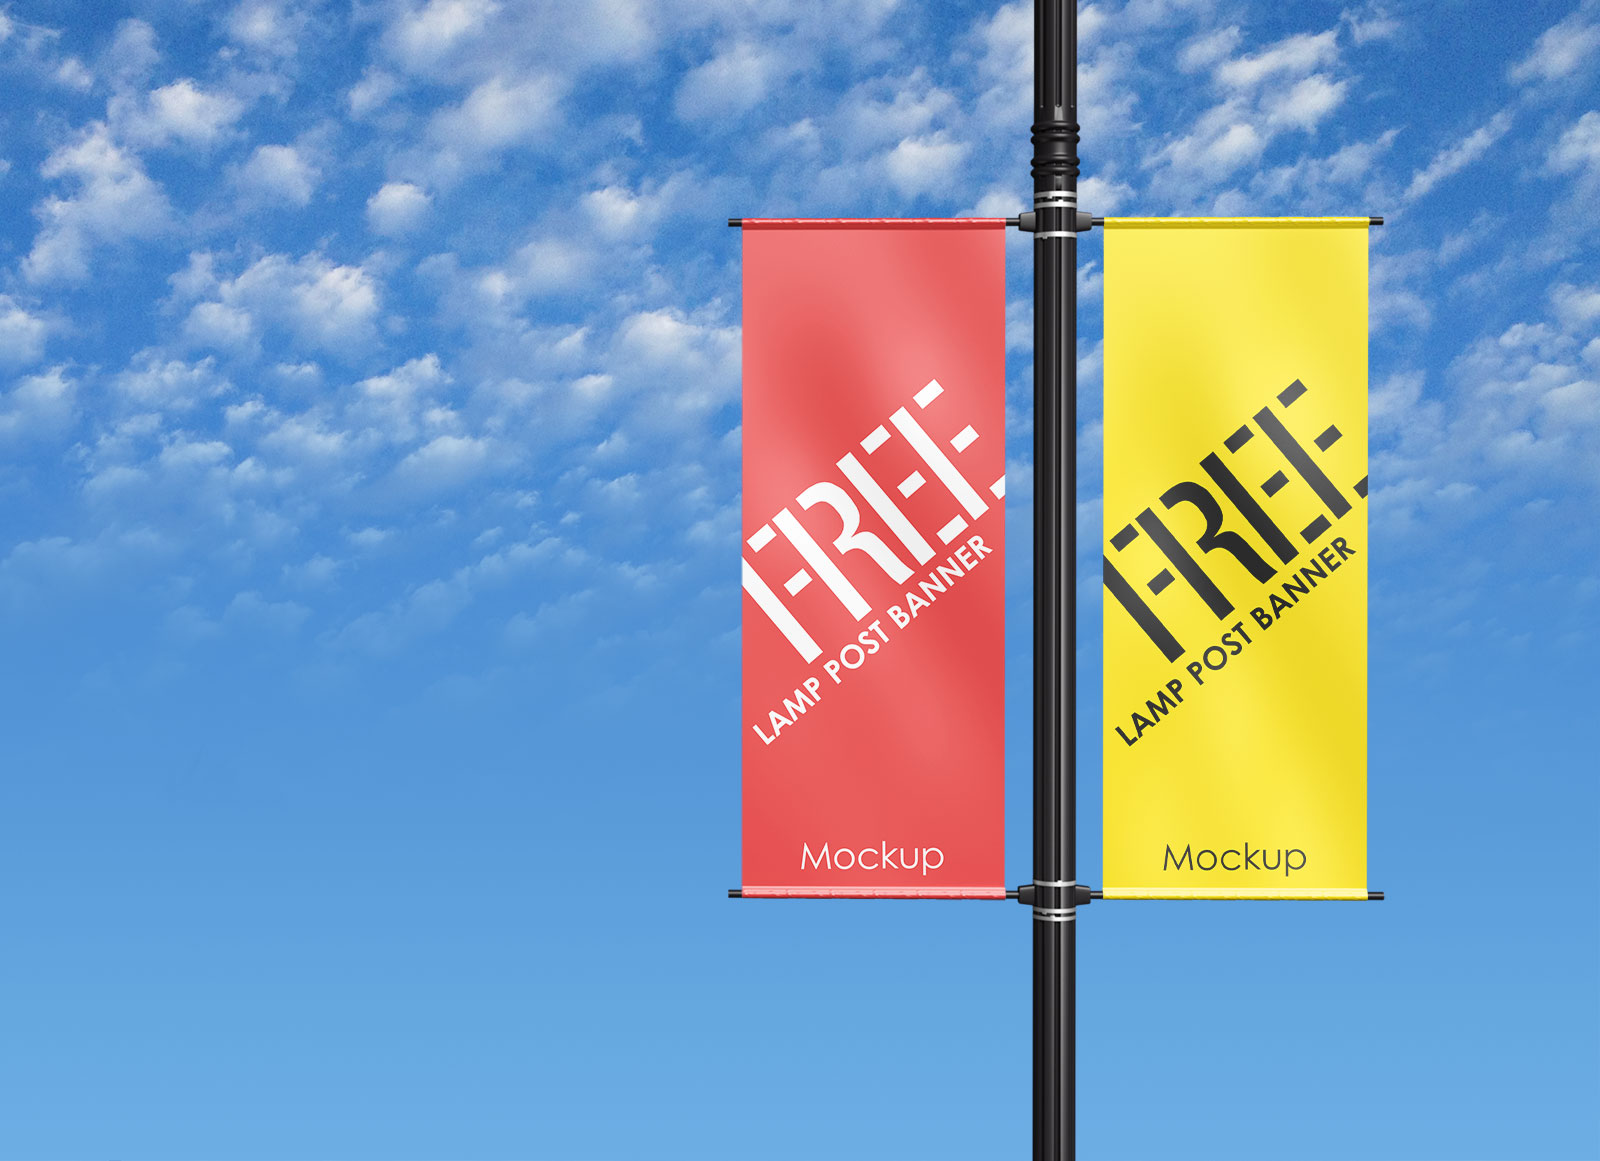 Free-Outdoor-Advertising-Lamp-Post-Banner-Mockup-PSD-2